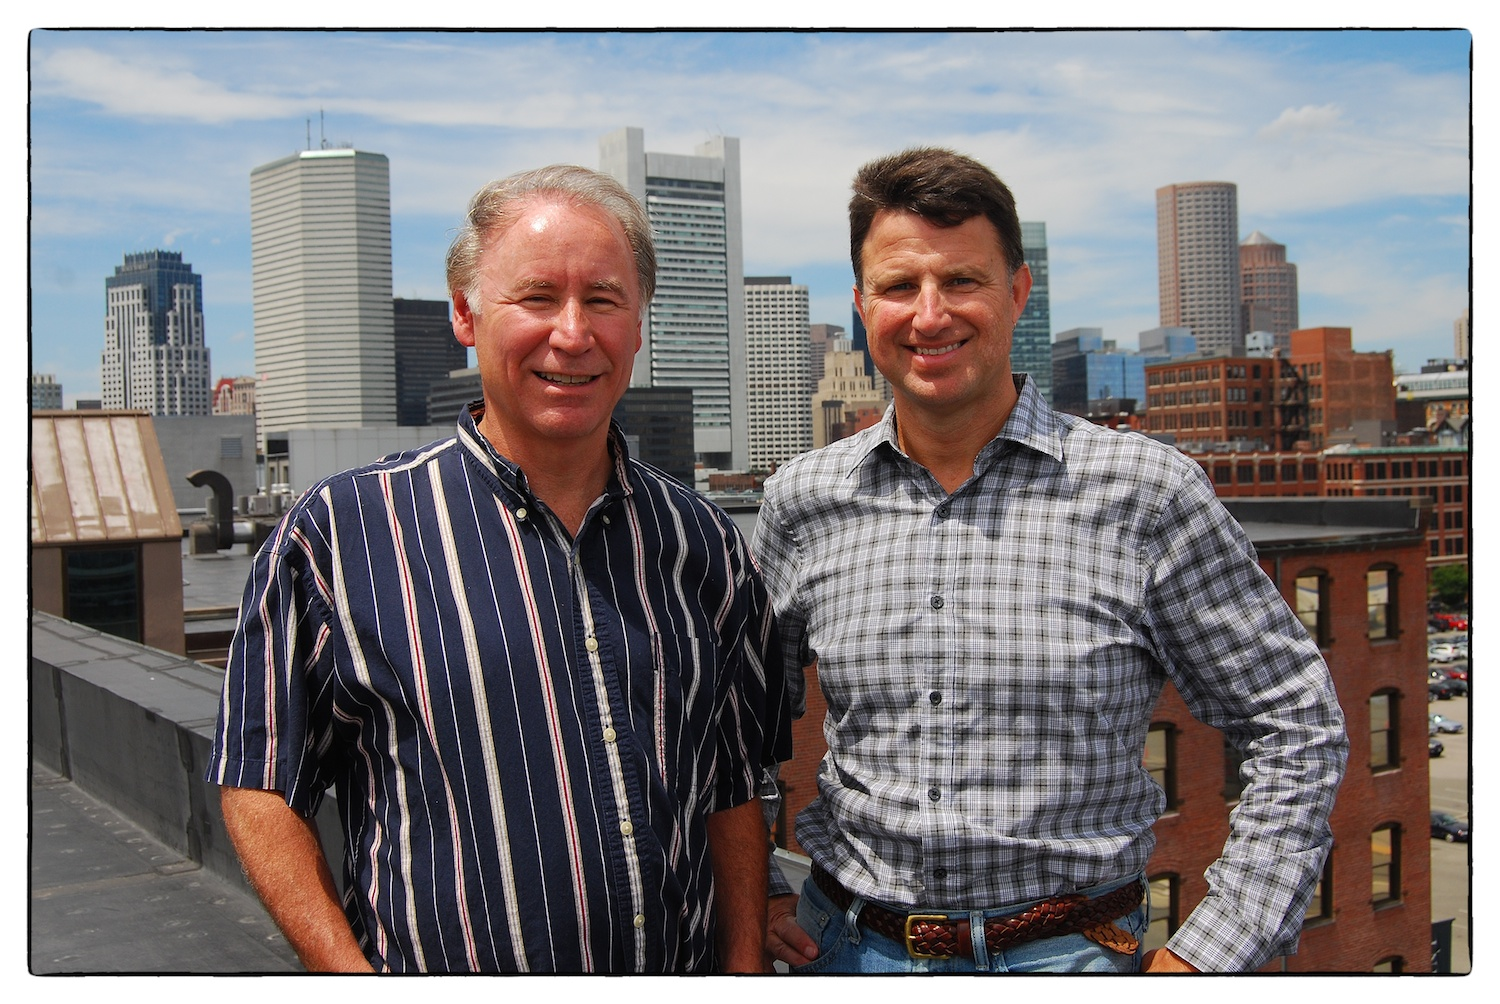 Doug Bennett and Jim Rattray, overlooking Boston's Financial District. Photo by Rod Smith.